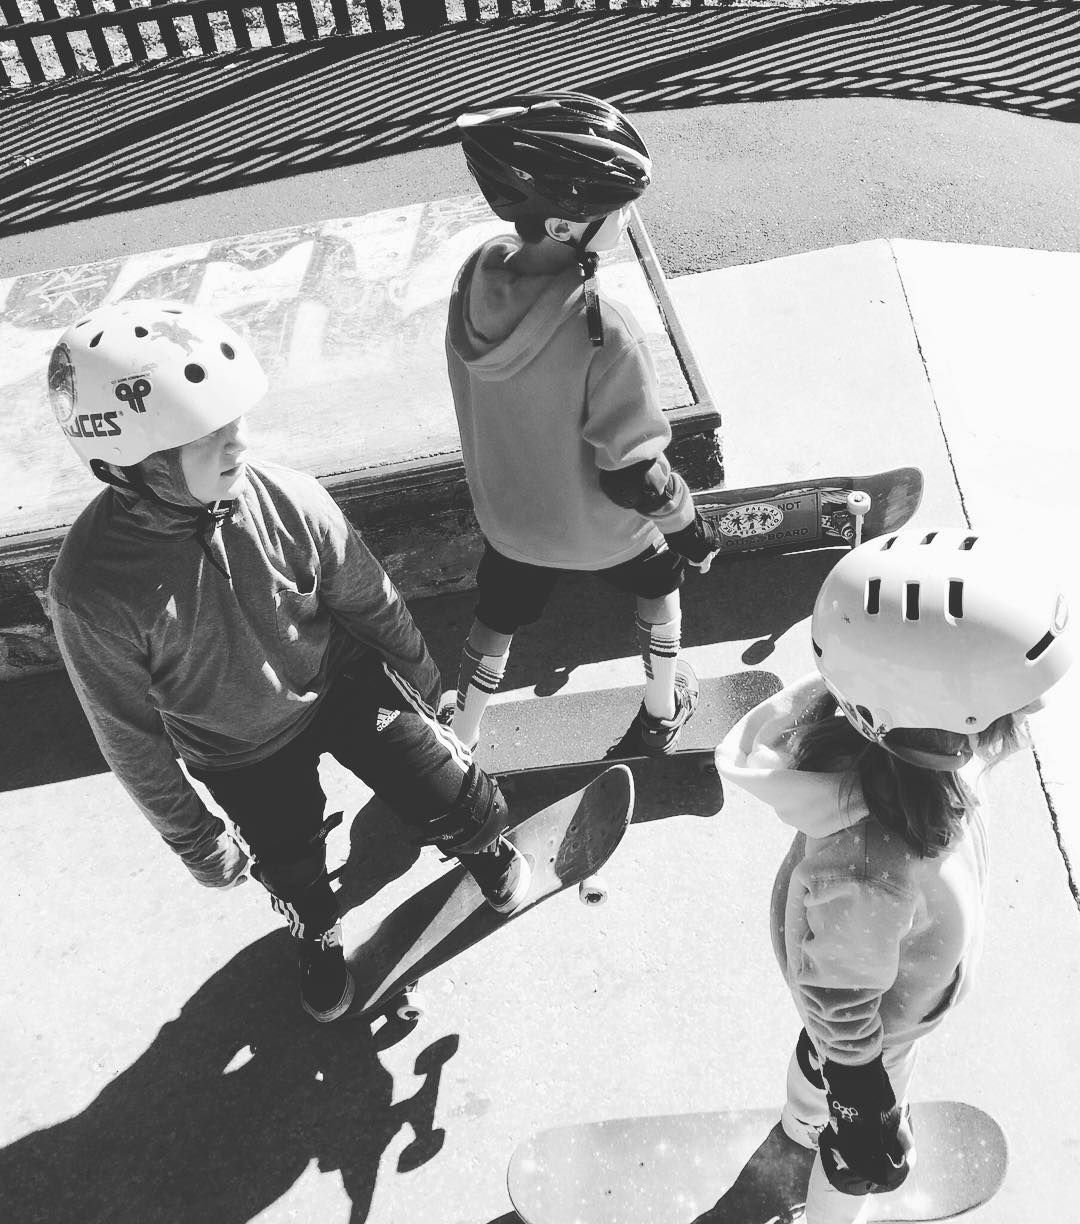 New skaters joined the scalzioriginalsskateboarders